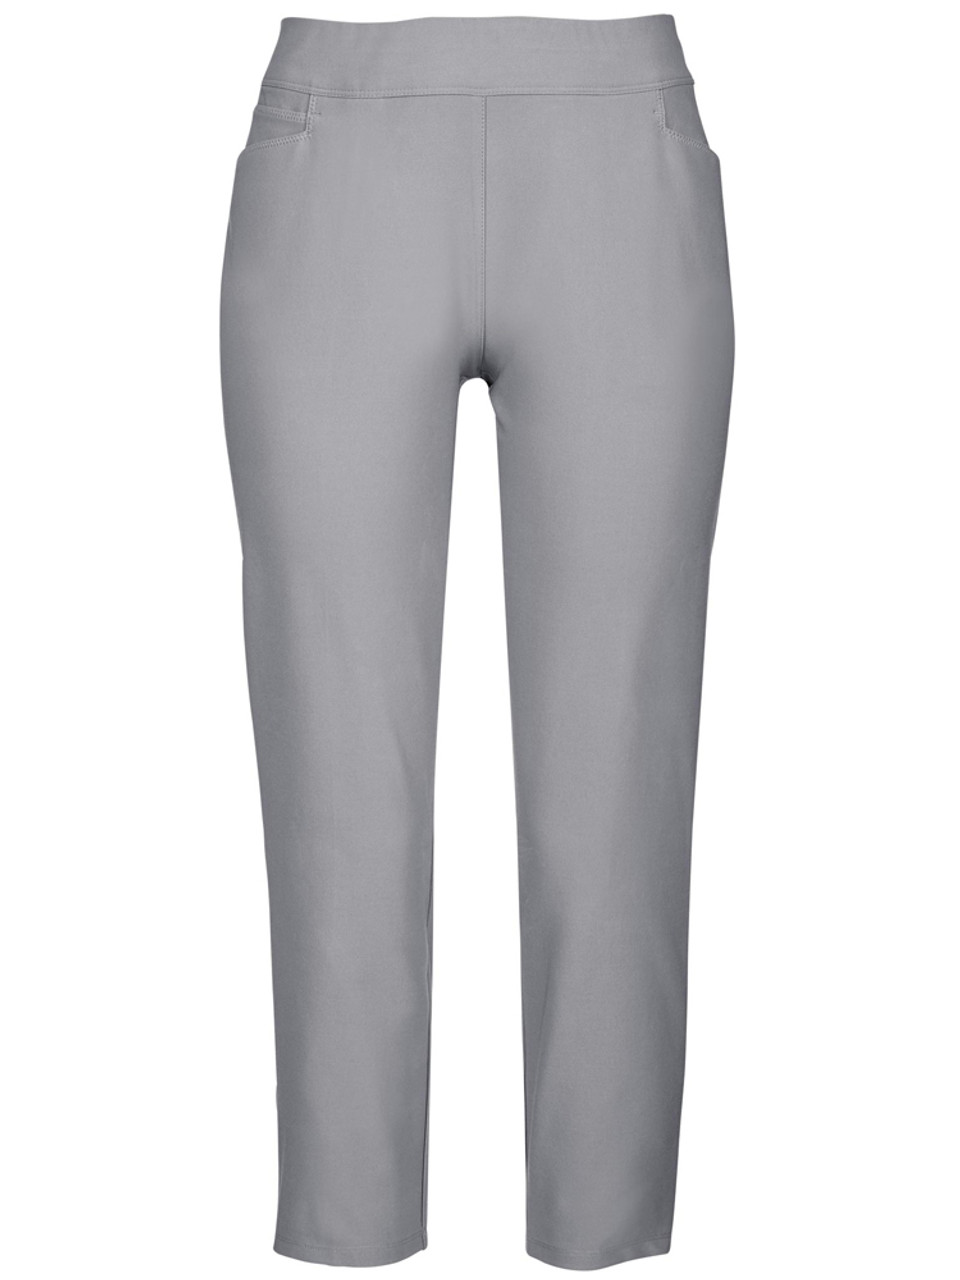 c6aebfa61d2b Adidas Ladies Adistar Ankle Pant - Grey Three - Ladies For Sale ...